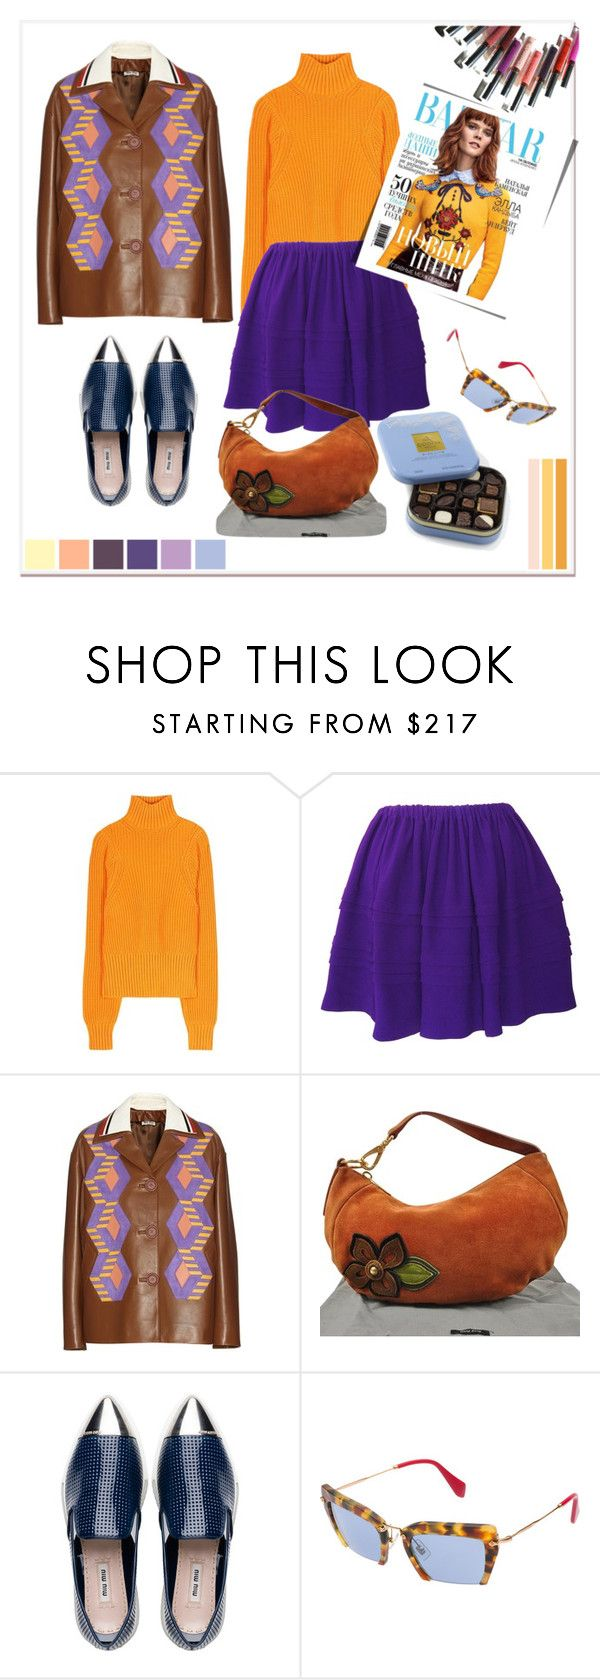 """""""Pre-owned pleated Miu Miu skirt!"""" by faten-m-h ❤ liked on Polyvore featuring Victoria Beckham, Miu Miu, Disney, women's clothing, women, female, woman, misses and juniors"""